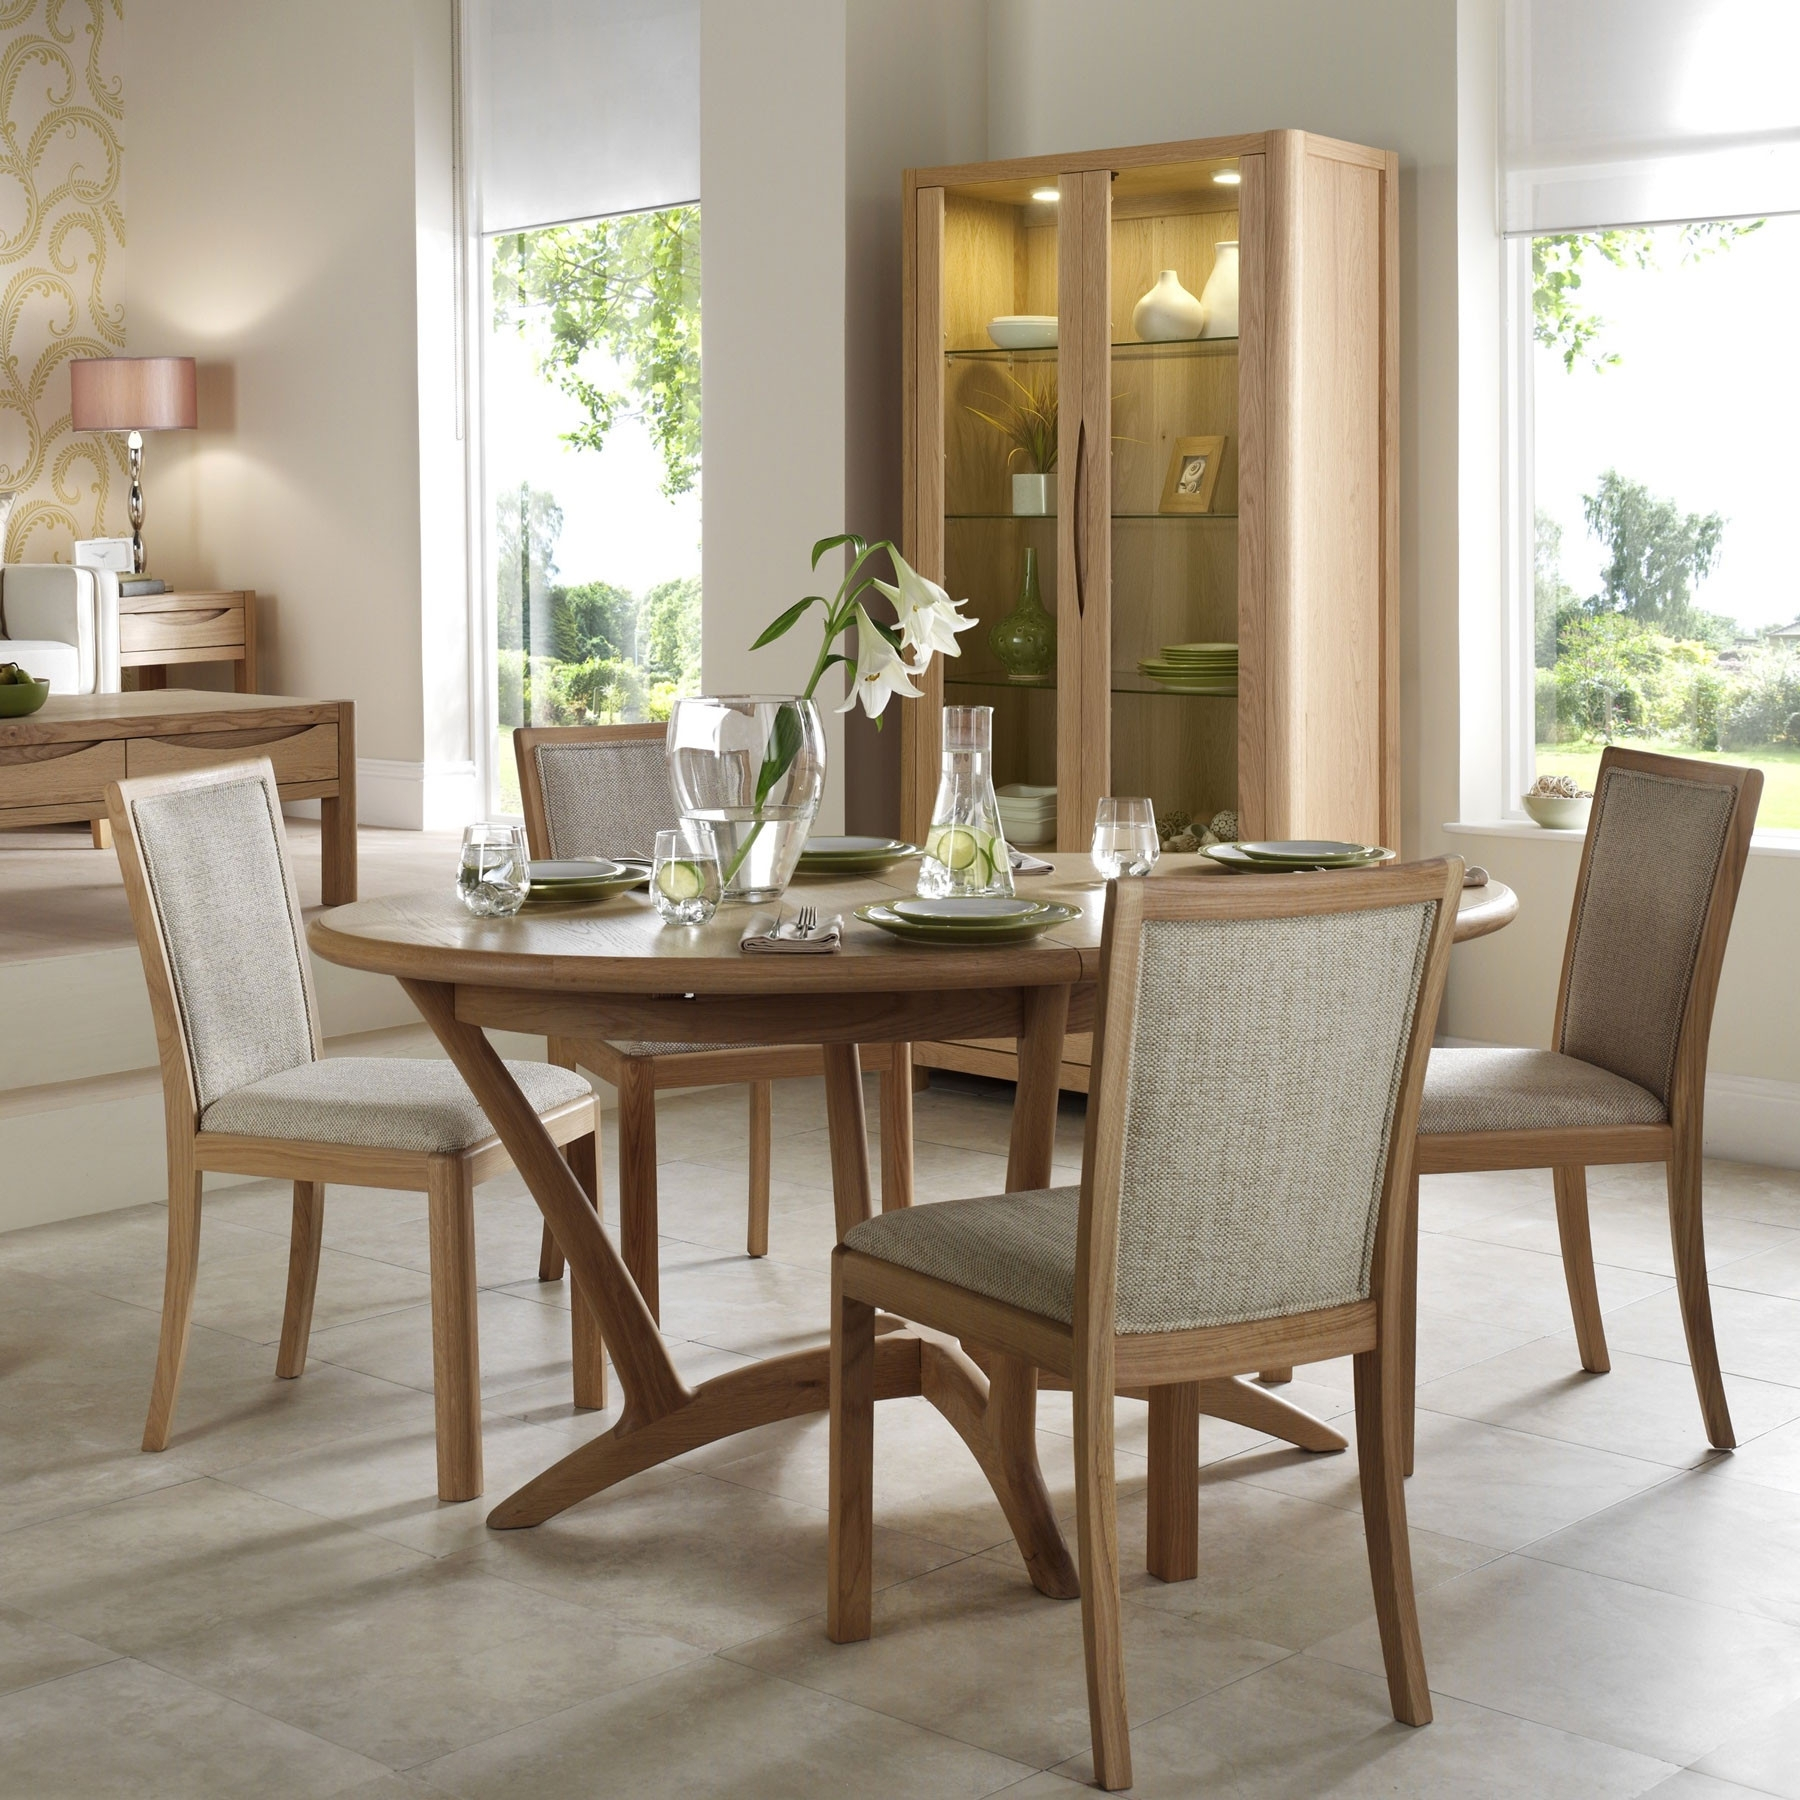 Latest Dining Tables And Fabric Chairs In Oslo Light Oak Oval Extending 210Cm Dining Table & 6 Fabric Chairs (View 24 of 25)